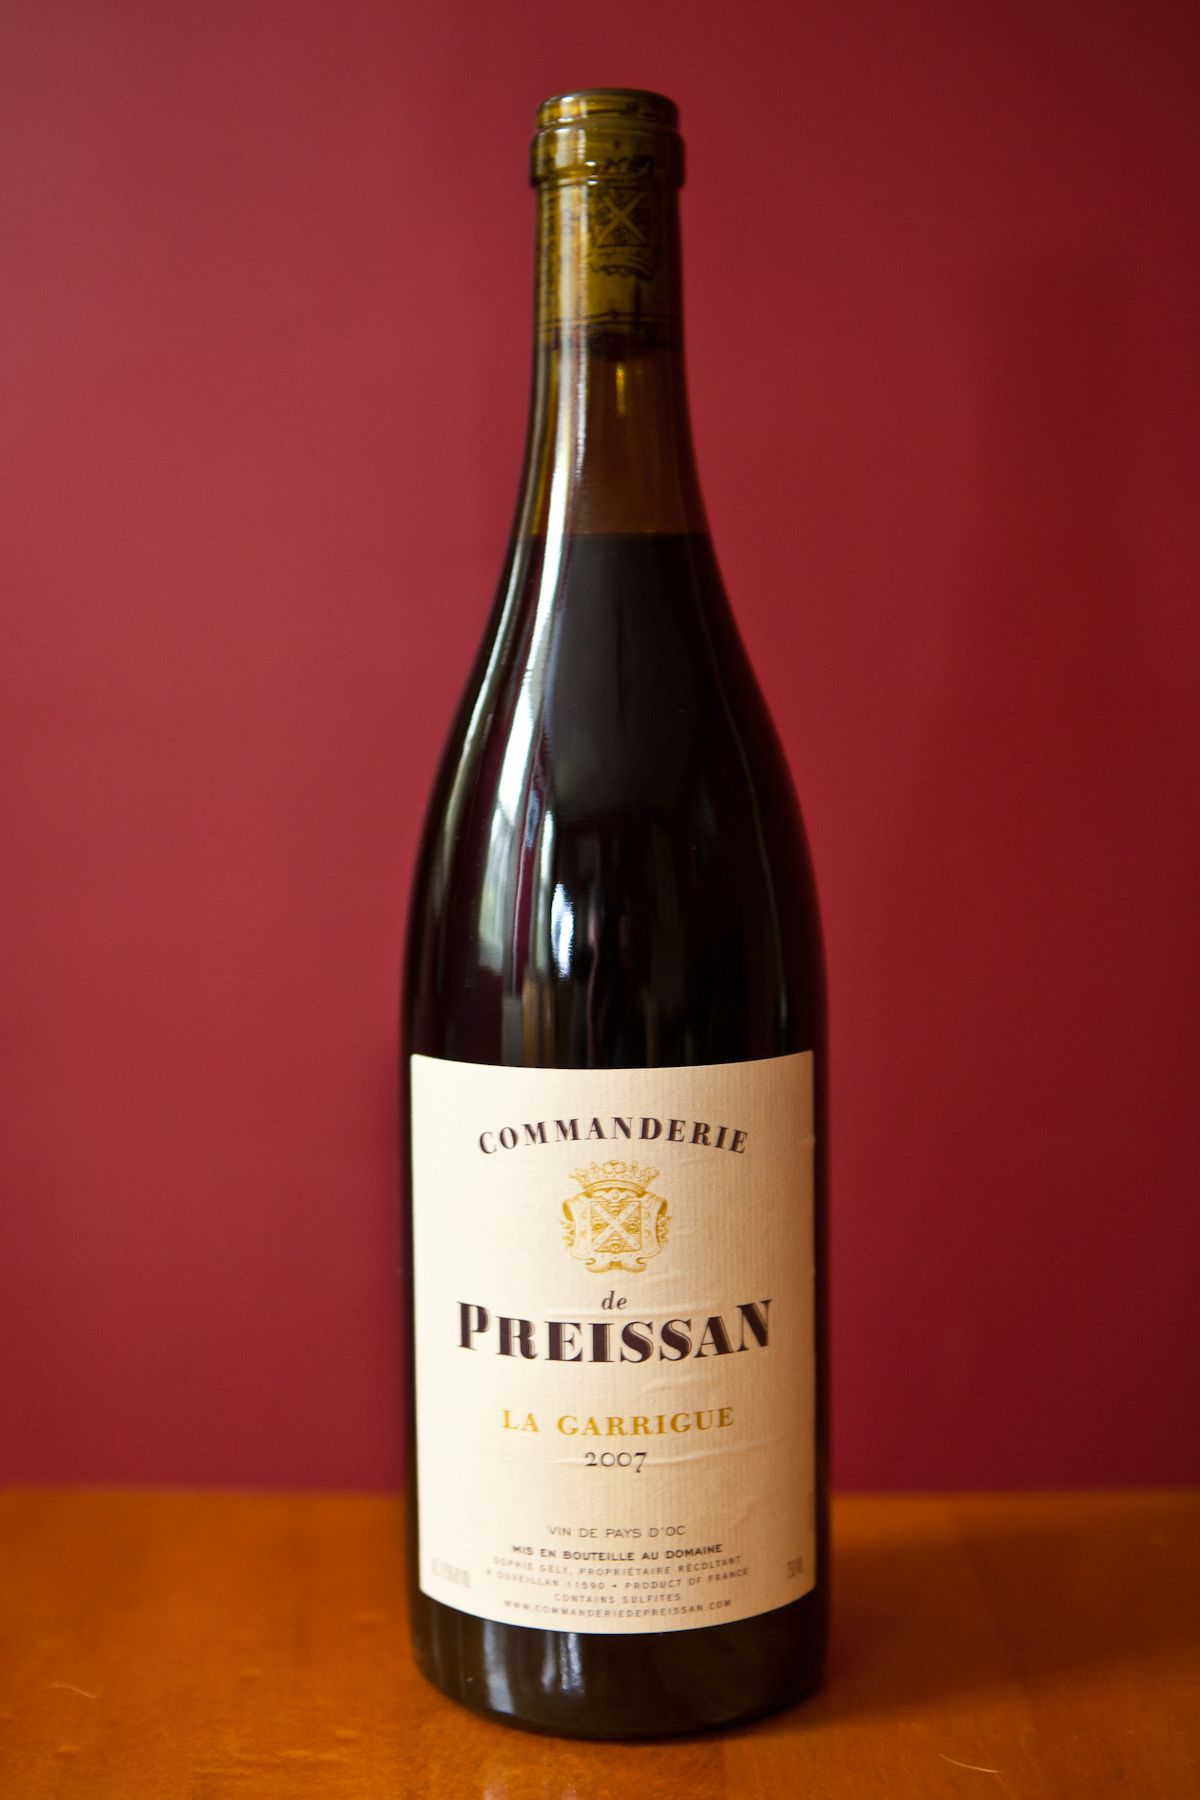 Commanderie De Preissan Organic Wine Wines Wine Bottle